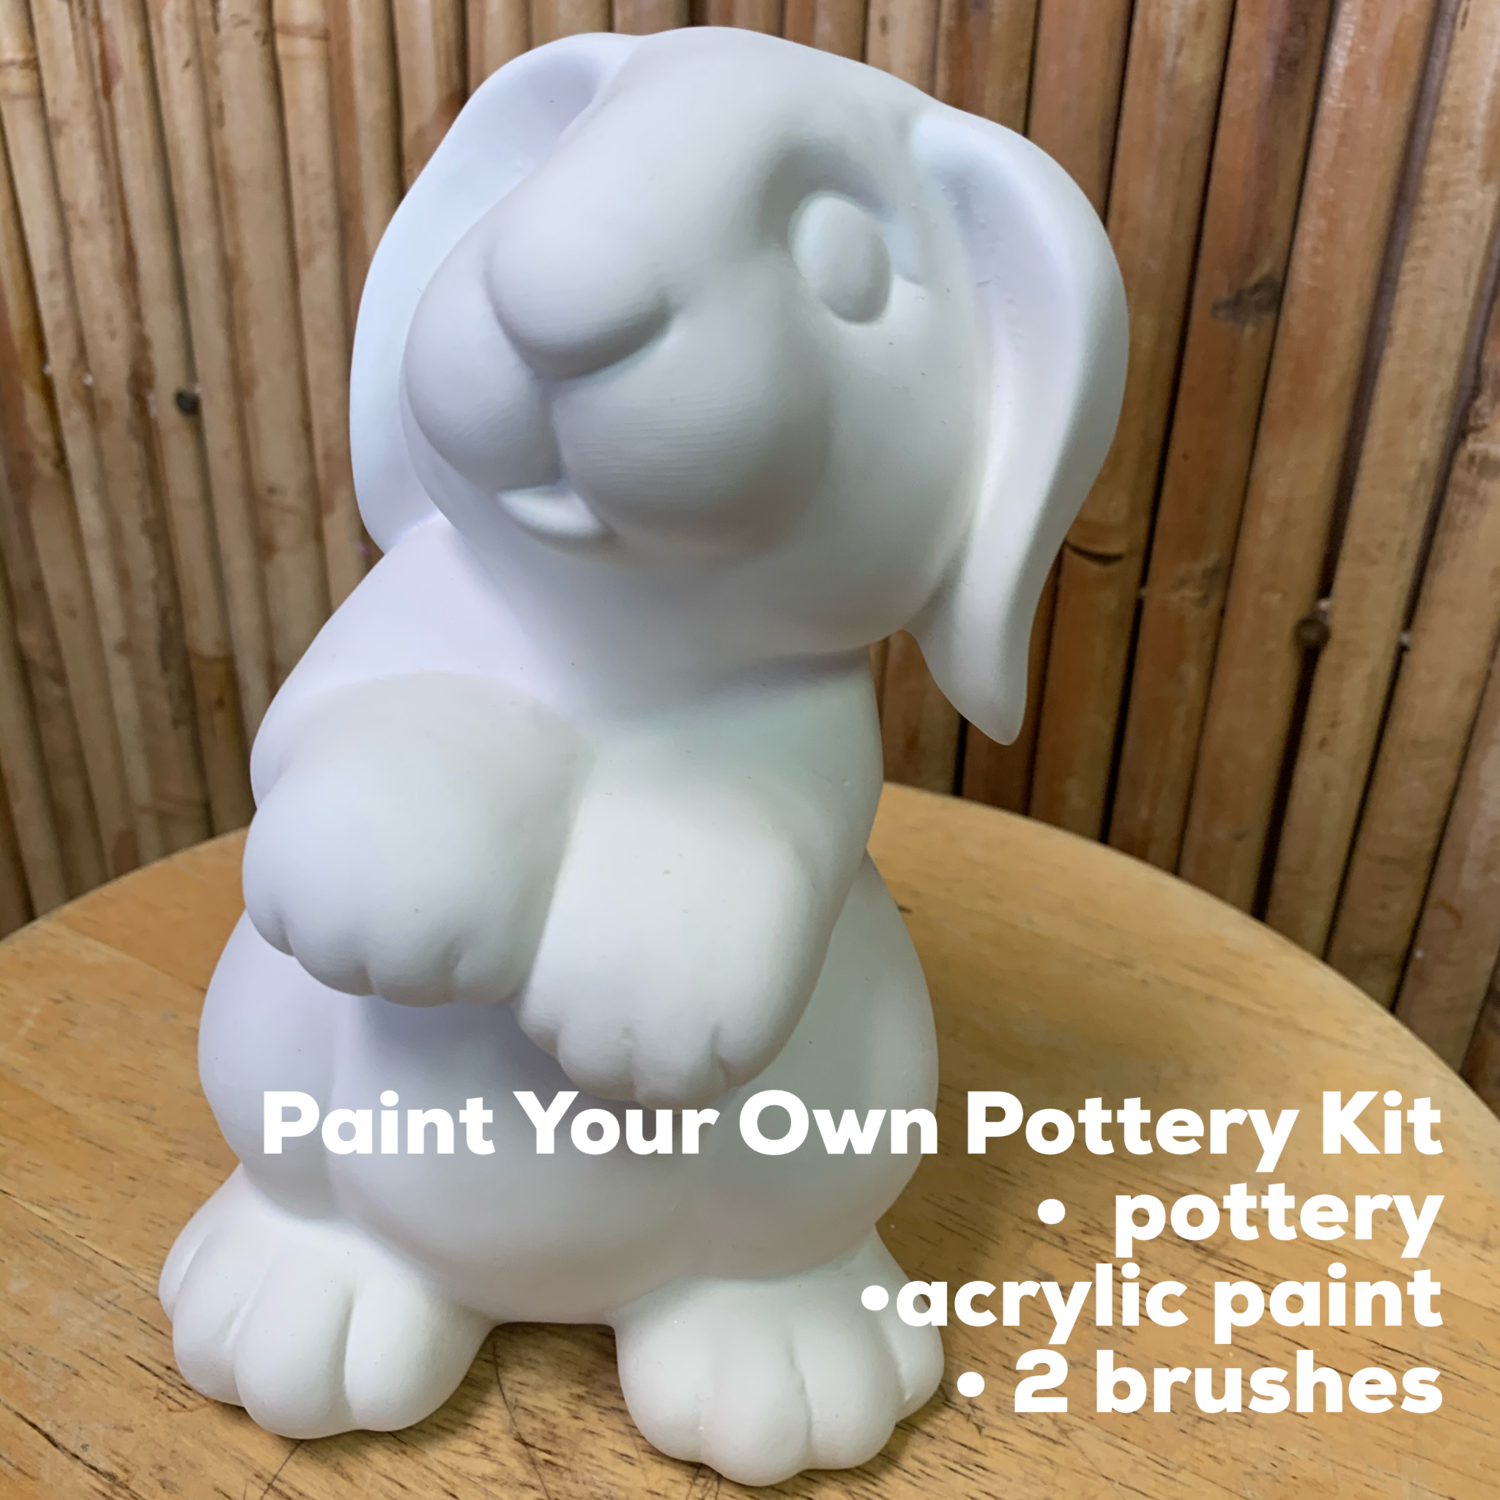 NO FIRE Paint Your Own Pottery Kit -  Ceramic Bunny Rabbit Bank Acrylic Painting Kit